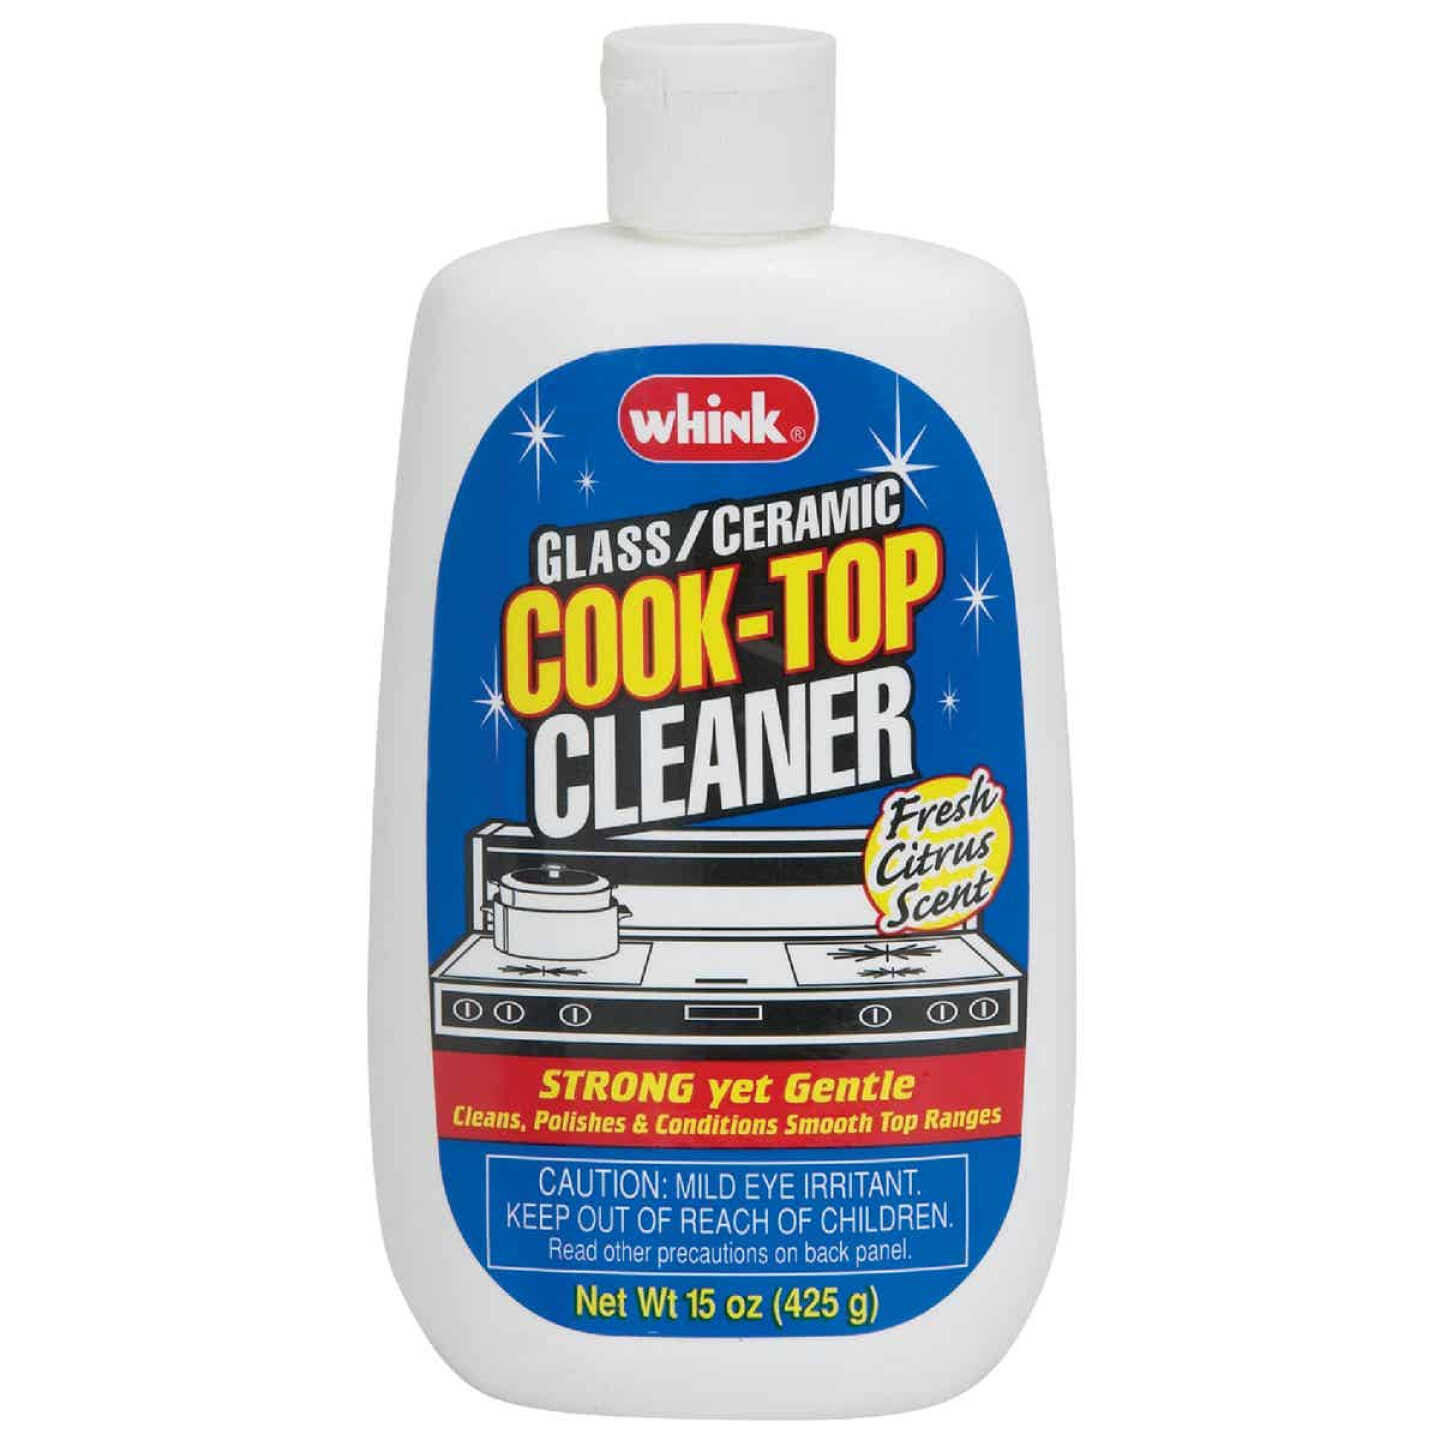 Whink 15 Oz. Glass and Ceramic Cook-Top Cleaner Image 1